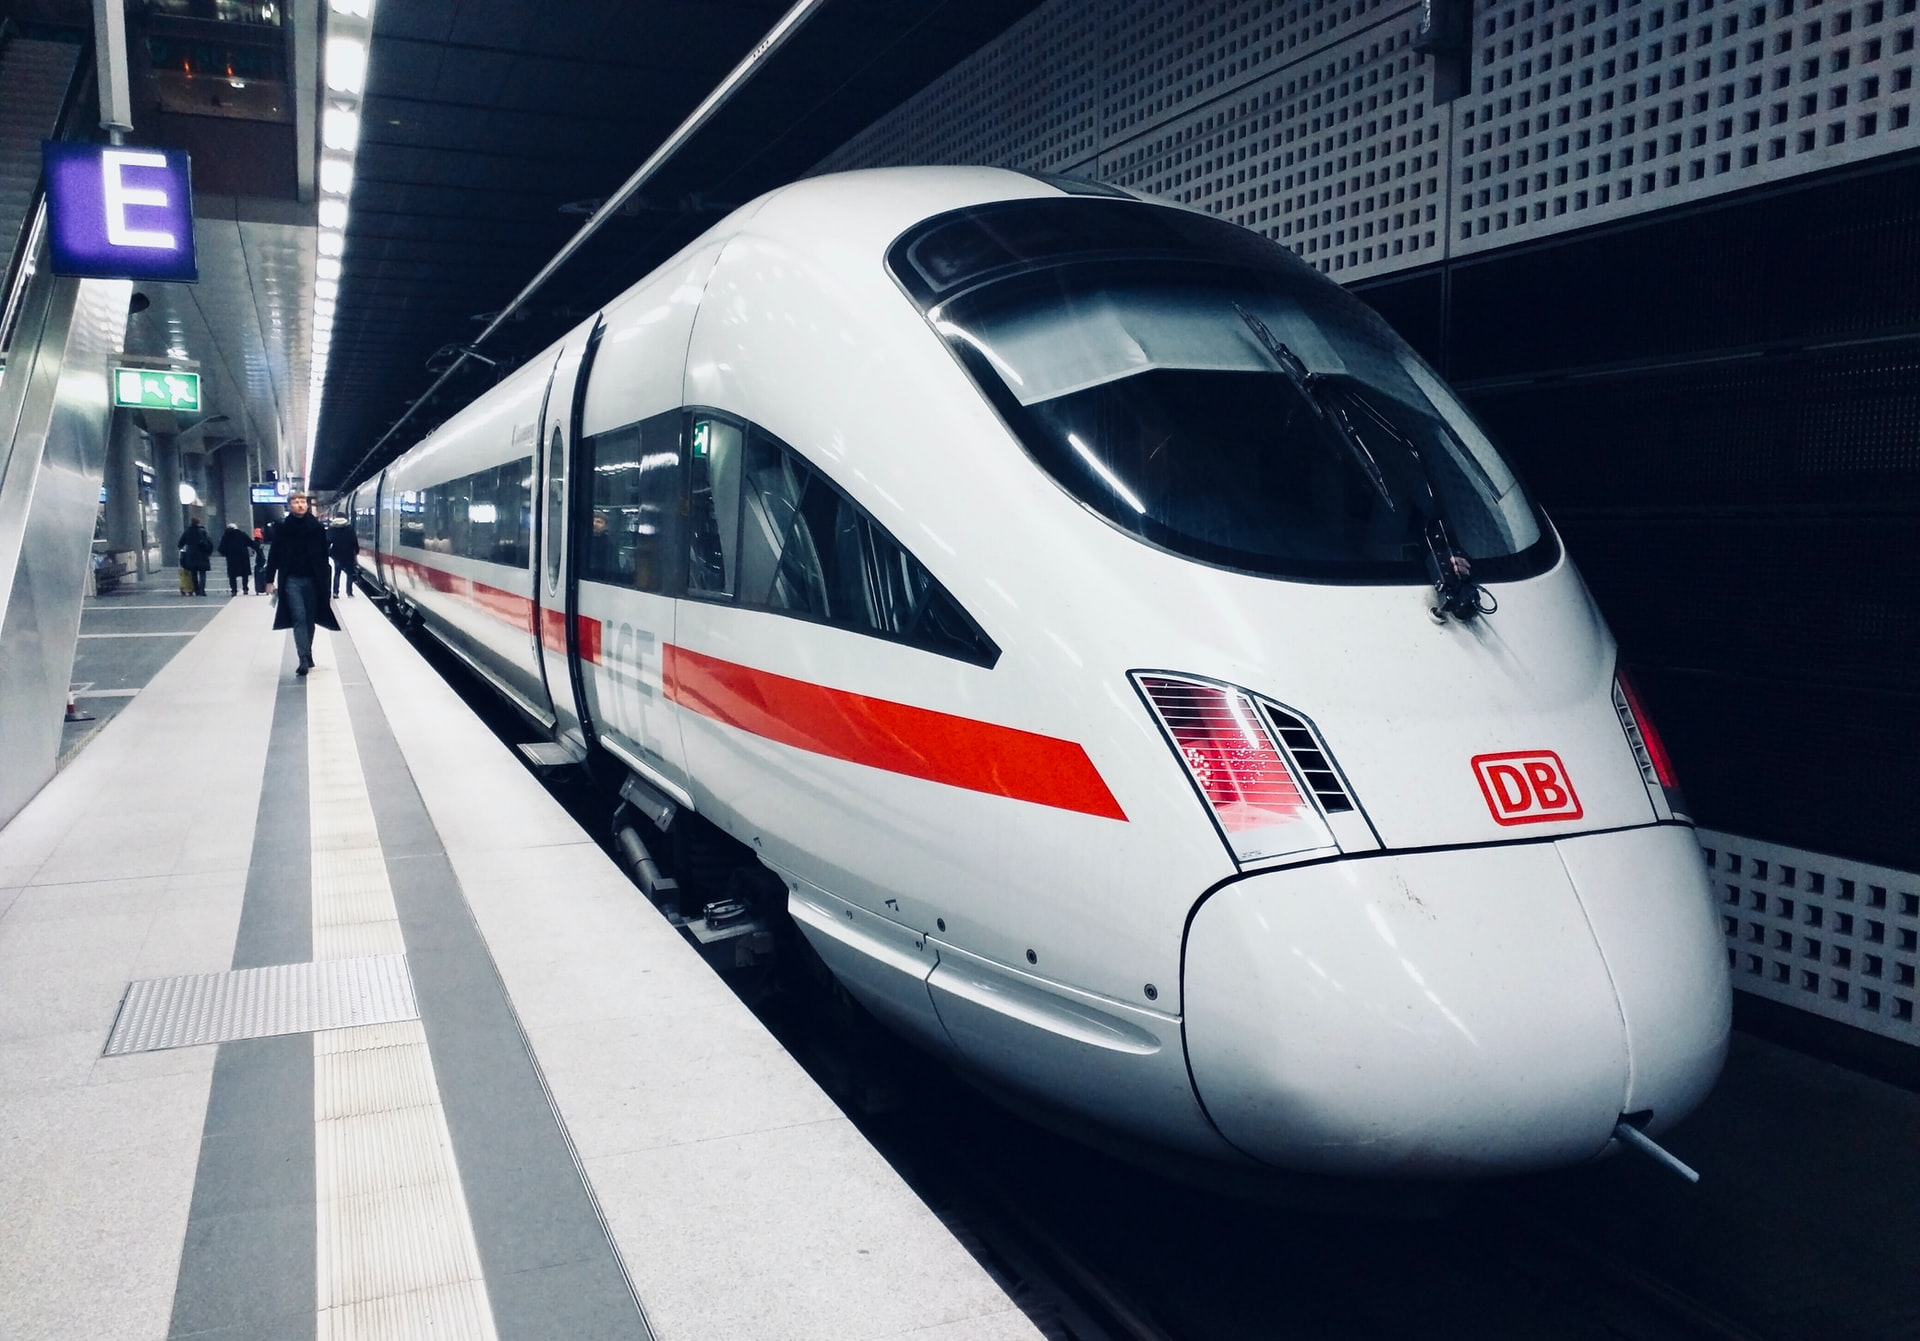 A high speed rail train in Berlin, Germany. Photo courtesy of Daniel Abadia on Unsplash.